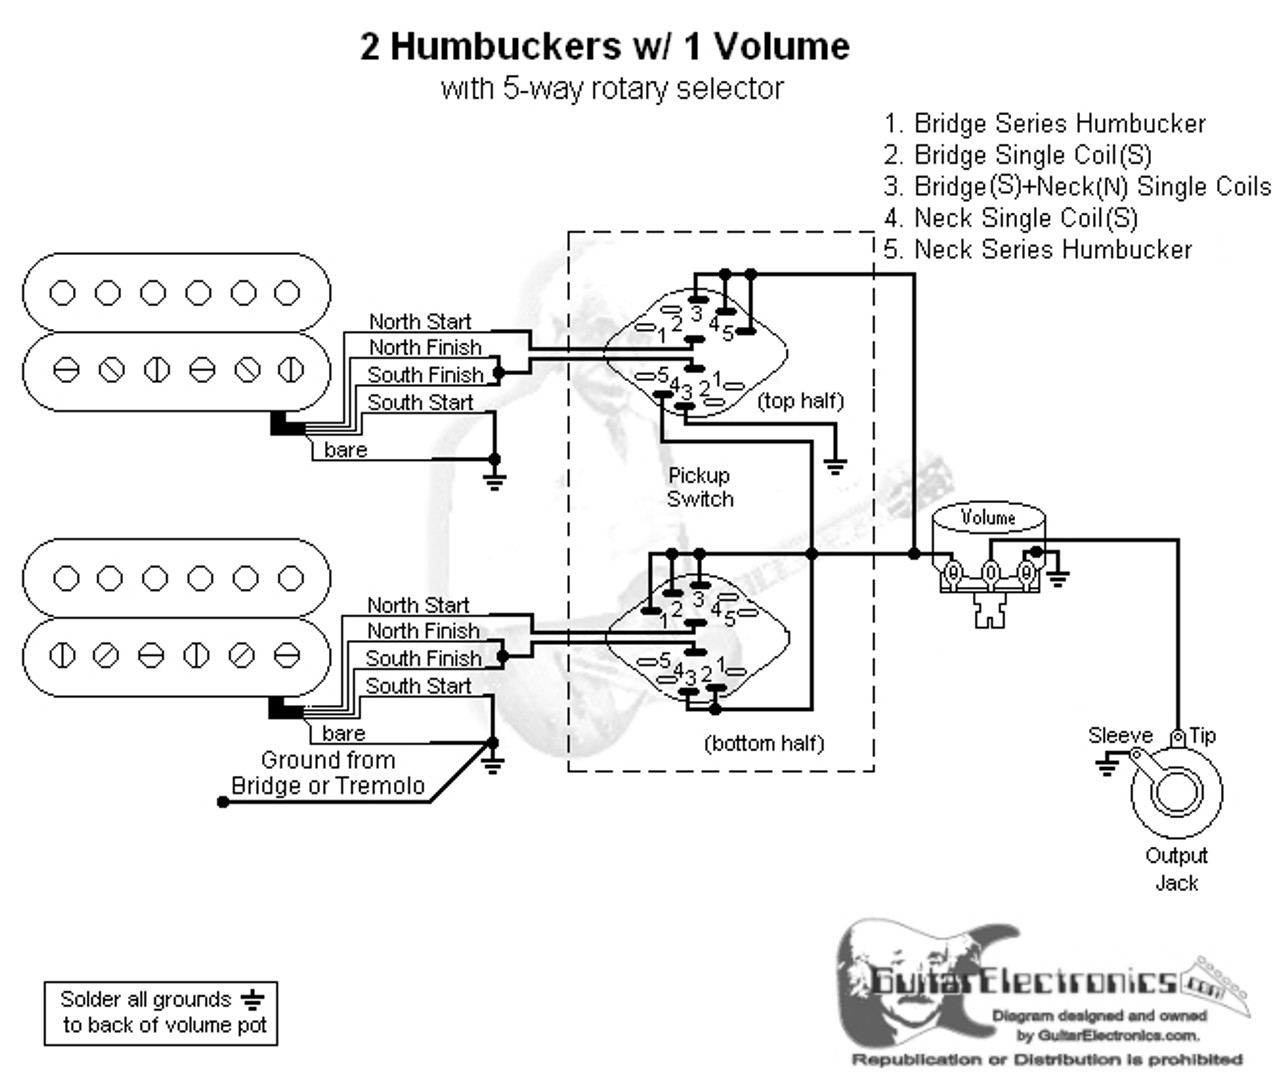 small resolution of rotary coil wiring diagram wiring diagrams wni 2 humbuckers 5 way rotary switch 1 volume 00